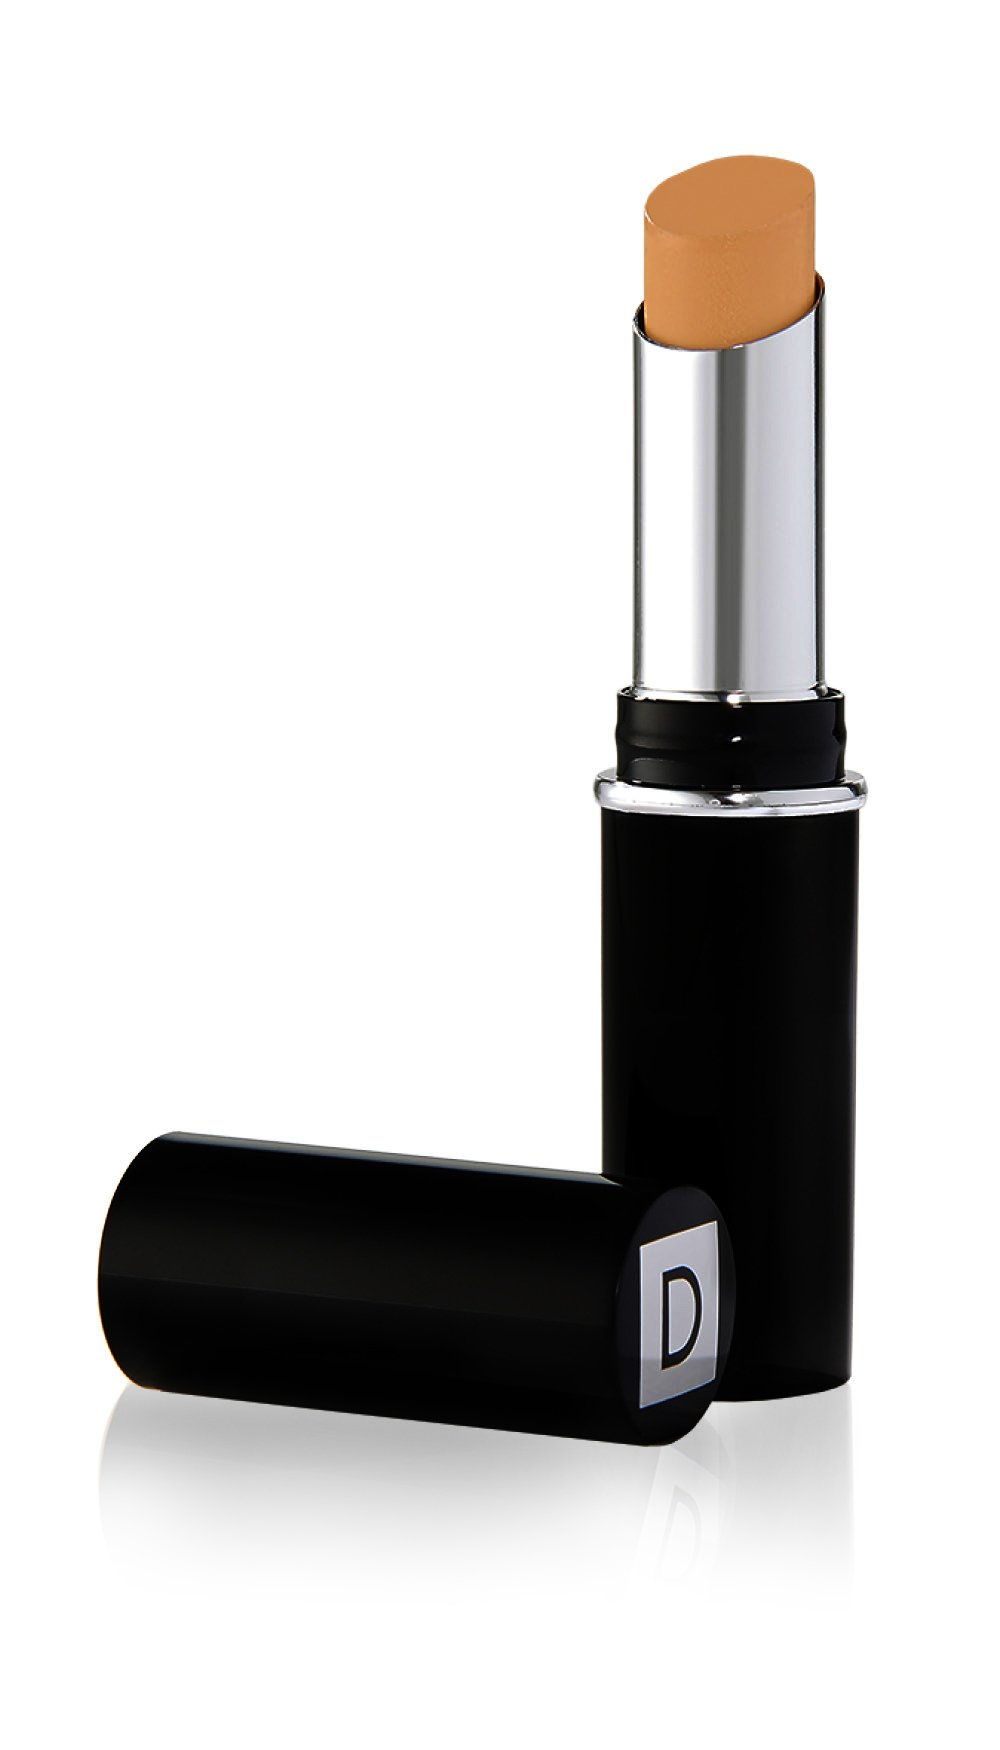 Dermablend Quick-Fix Full Coverage Concealer, 10C Natural, 0.16 Oz. by Dermablend (Image #1)